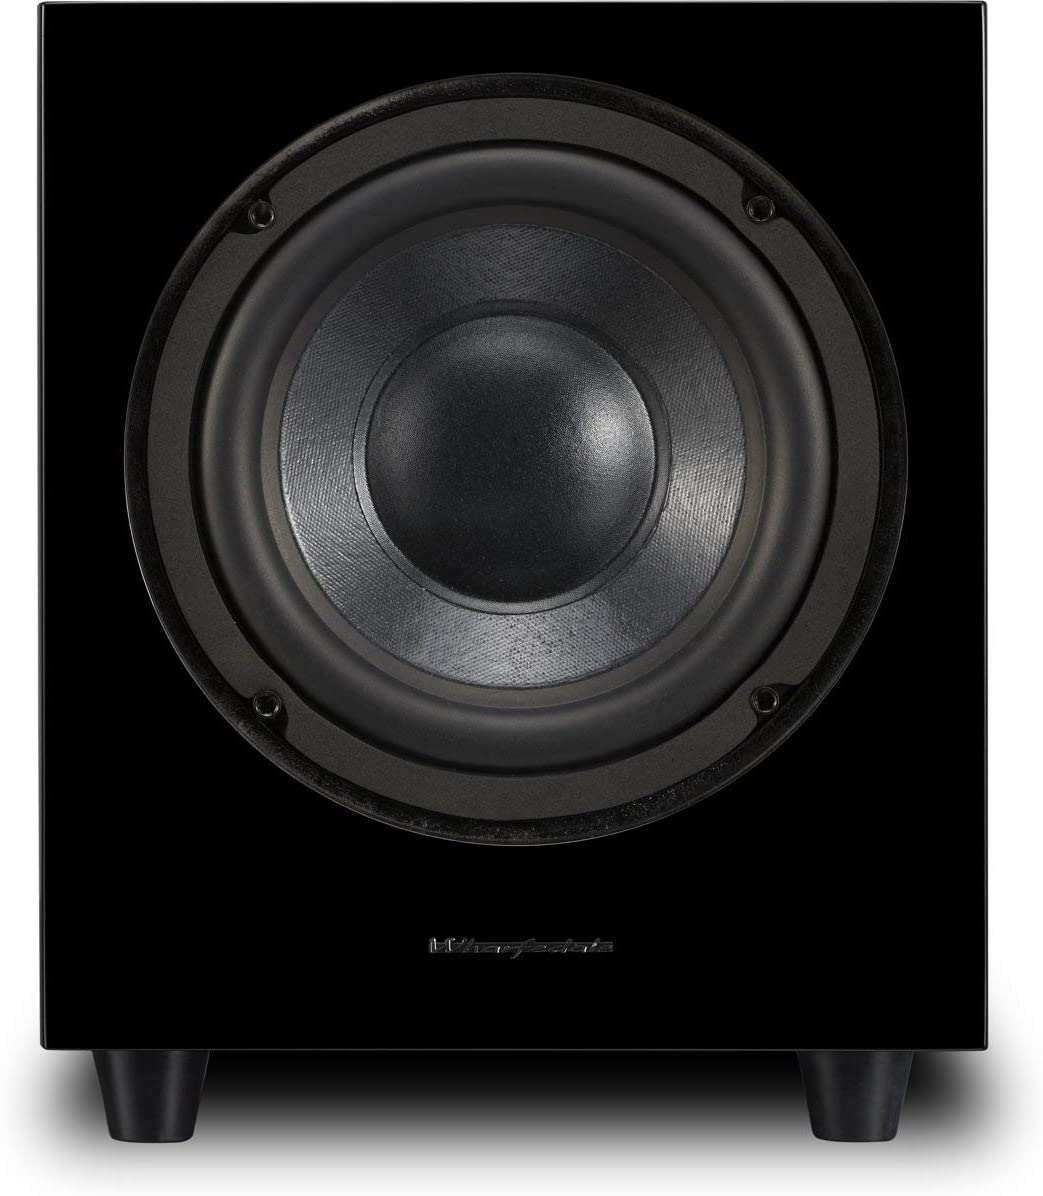 Wharfedale Subwoofer Activo wh-d10/Potencia MAX 300/W Color Negro